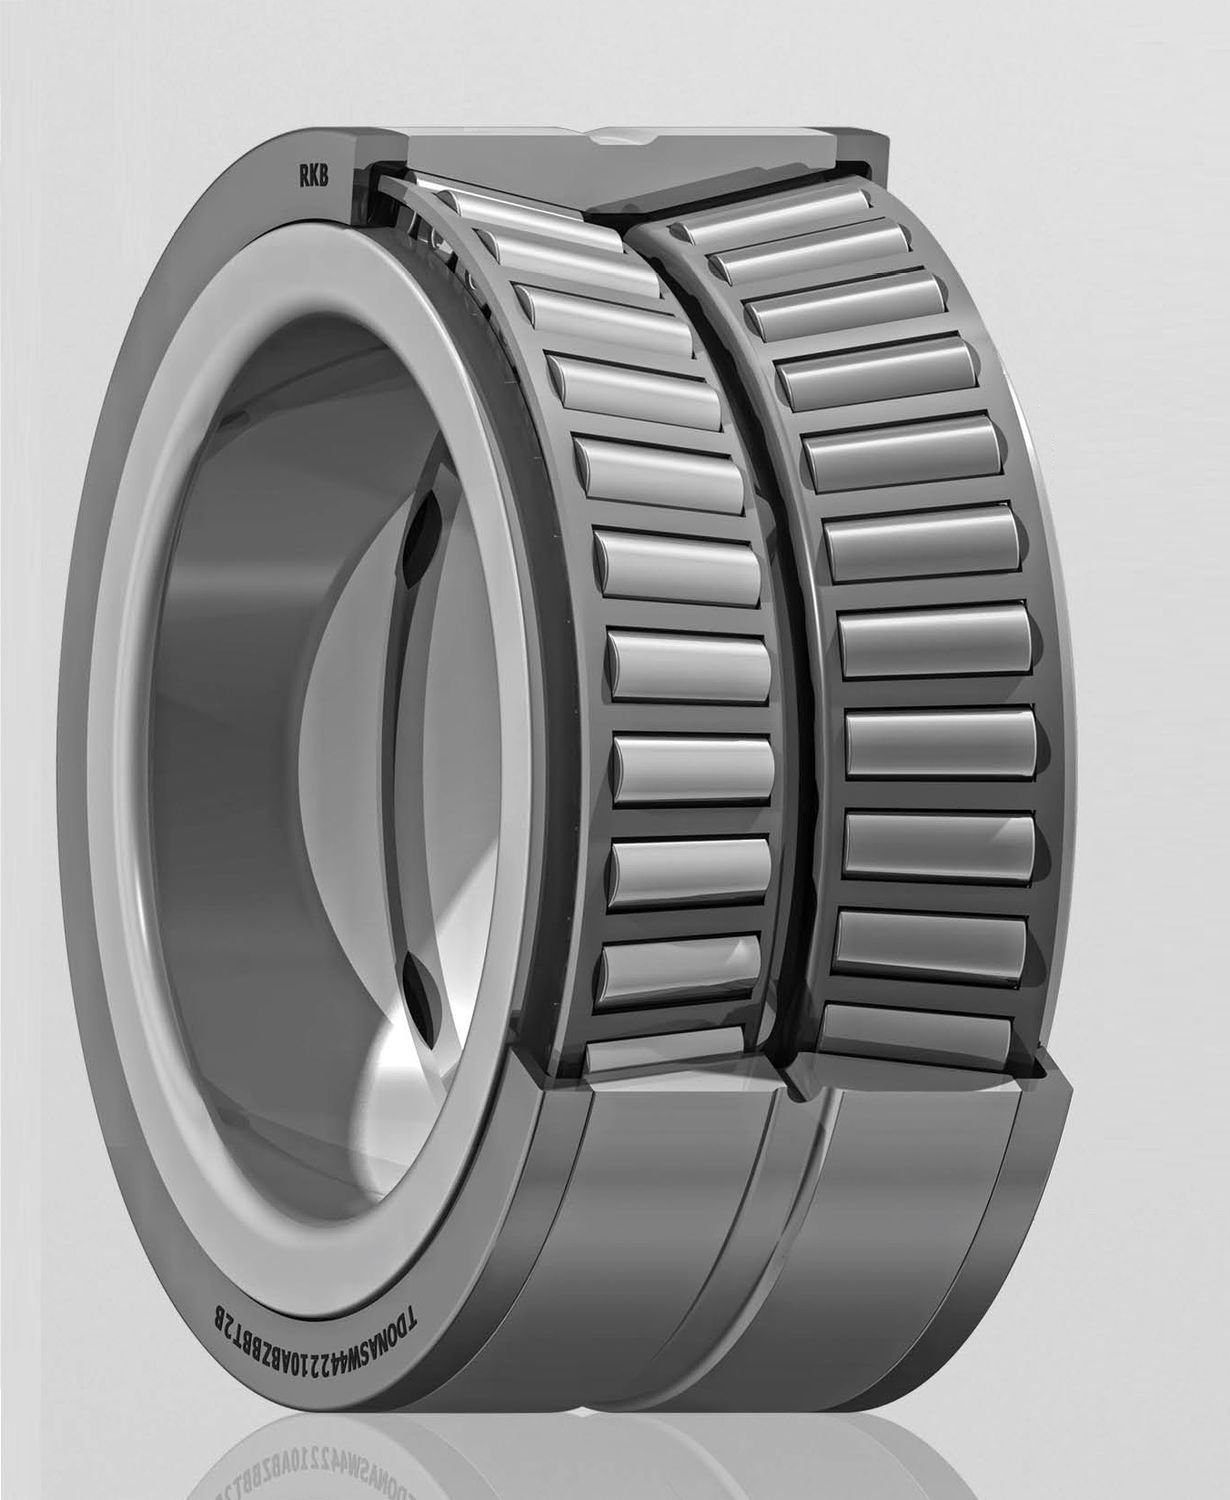 tapered roller bearing. tapered roller bearing / double-row for heavy loads - kc-pan01 series a